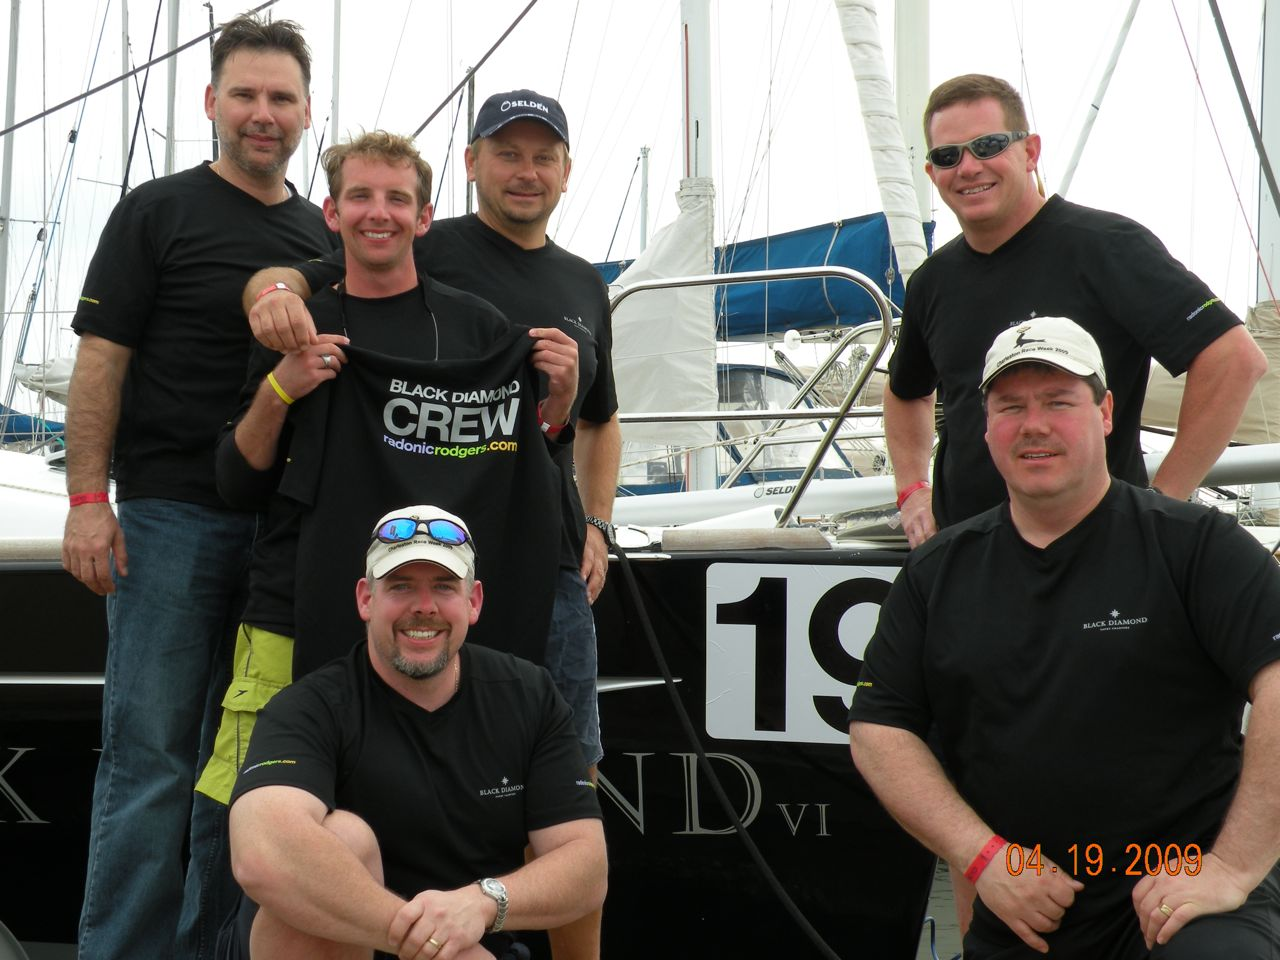 Charleston Race Week Black Diamond Crew, Ivan, Chris, Ed, Dubie, Derek and Craig. - (c) Copyright 2009